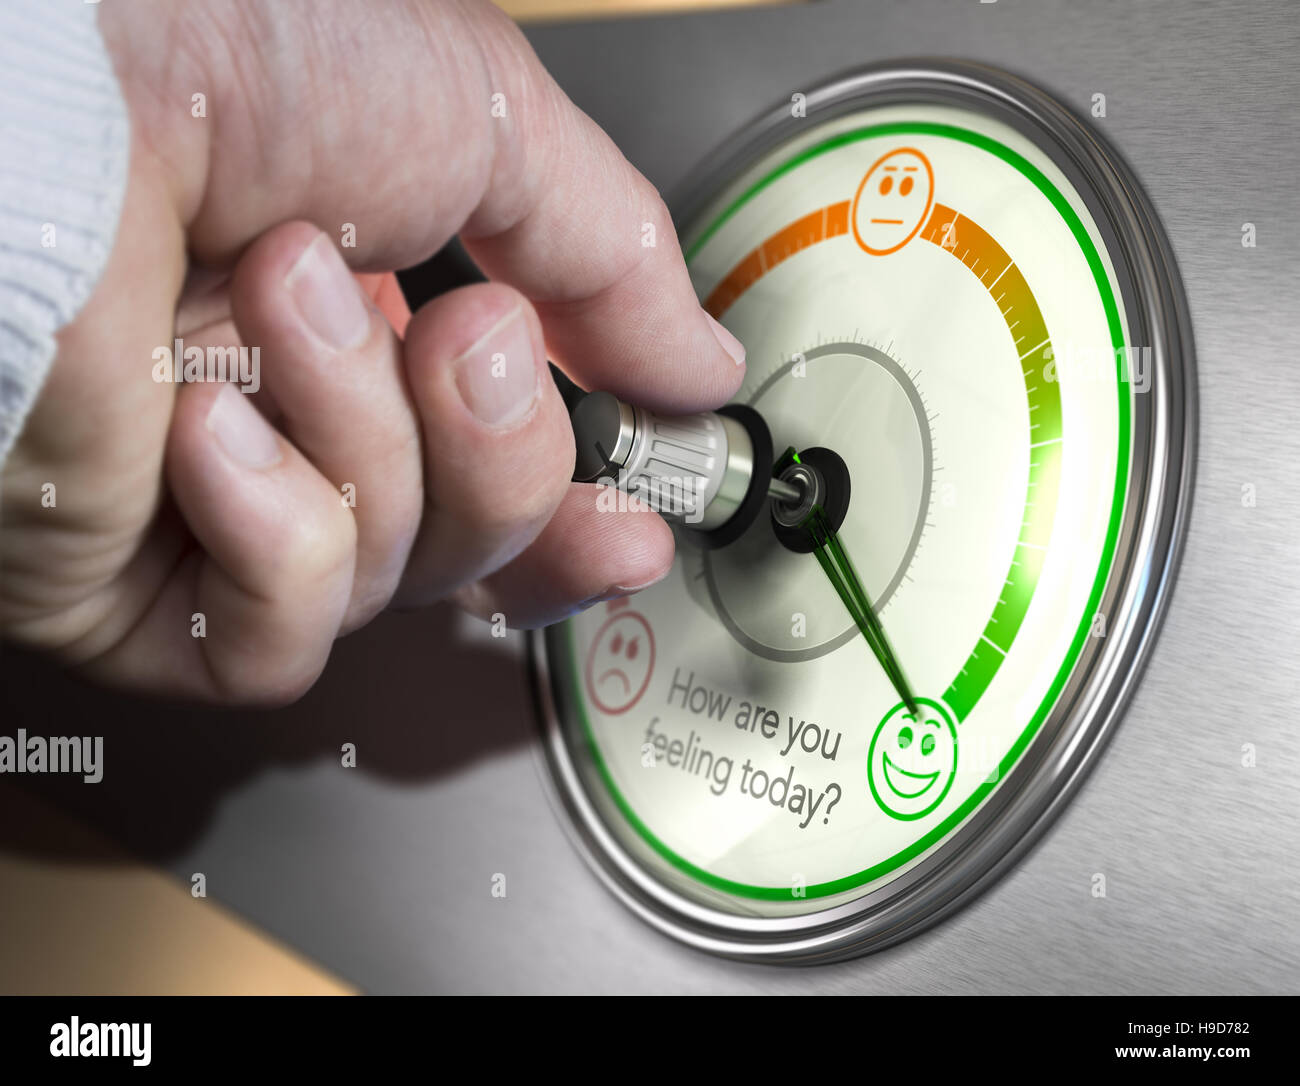 Hand turning a mood indicator knob to the optimistic position. Composite image between a photography and a 3D background. - Stock Image